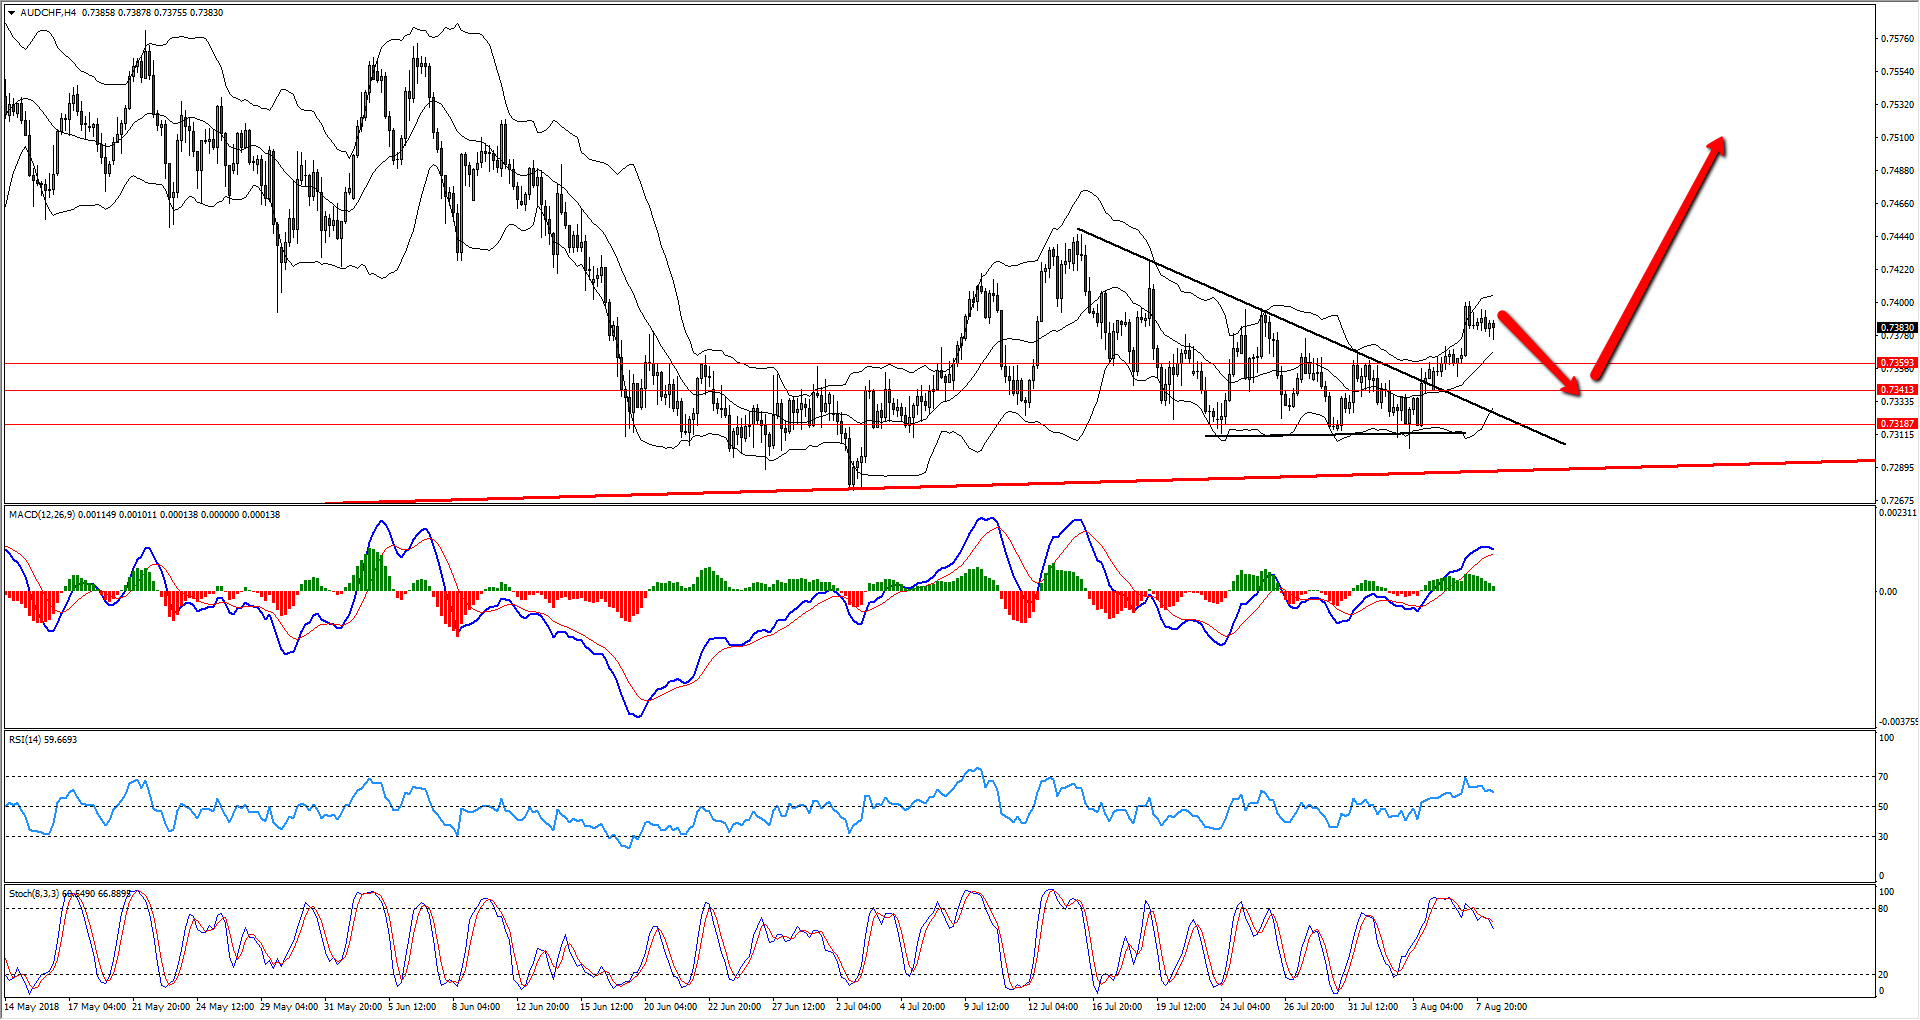 AUDCHF Trend Line Break Provides Buy Opportunity